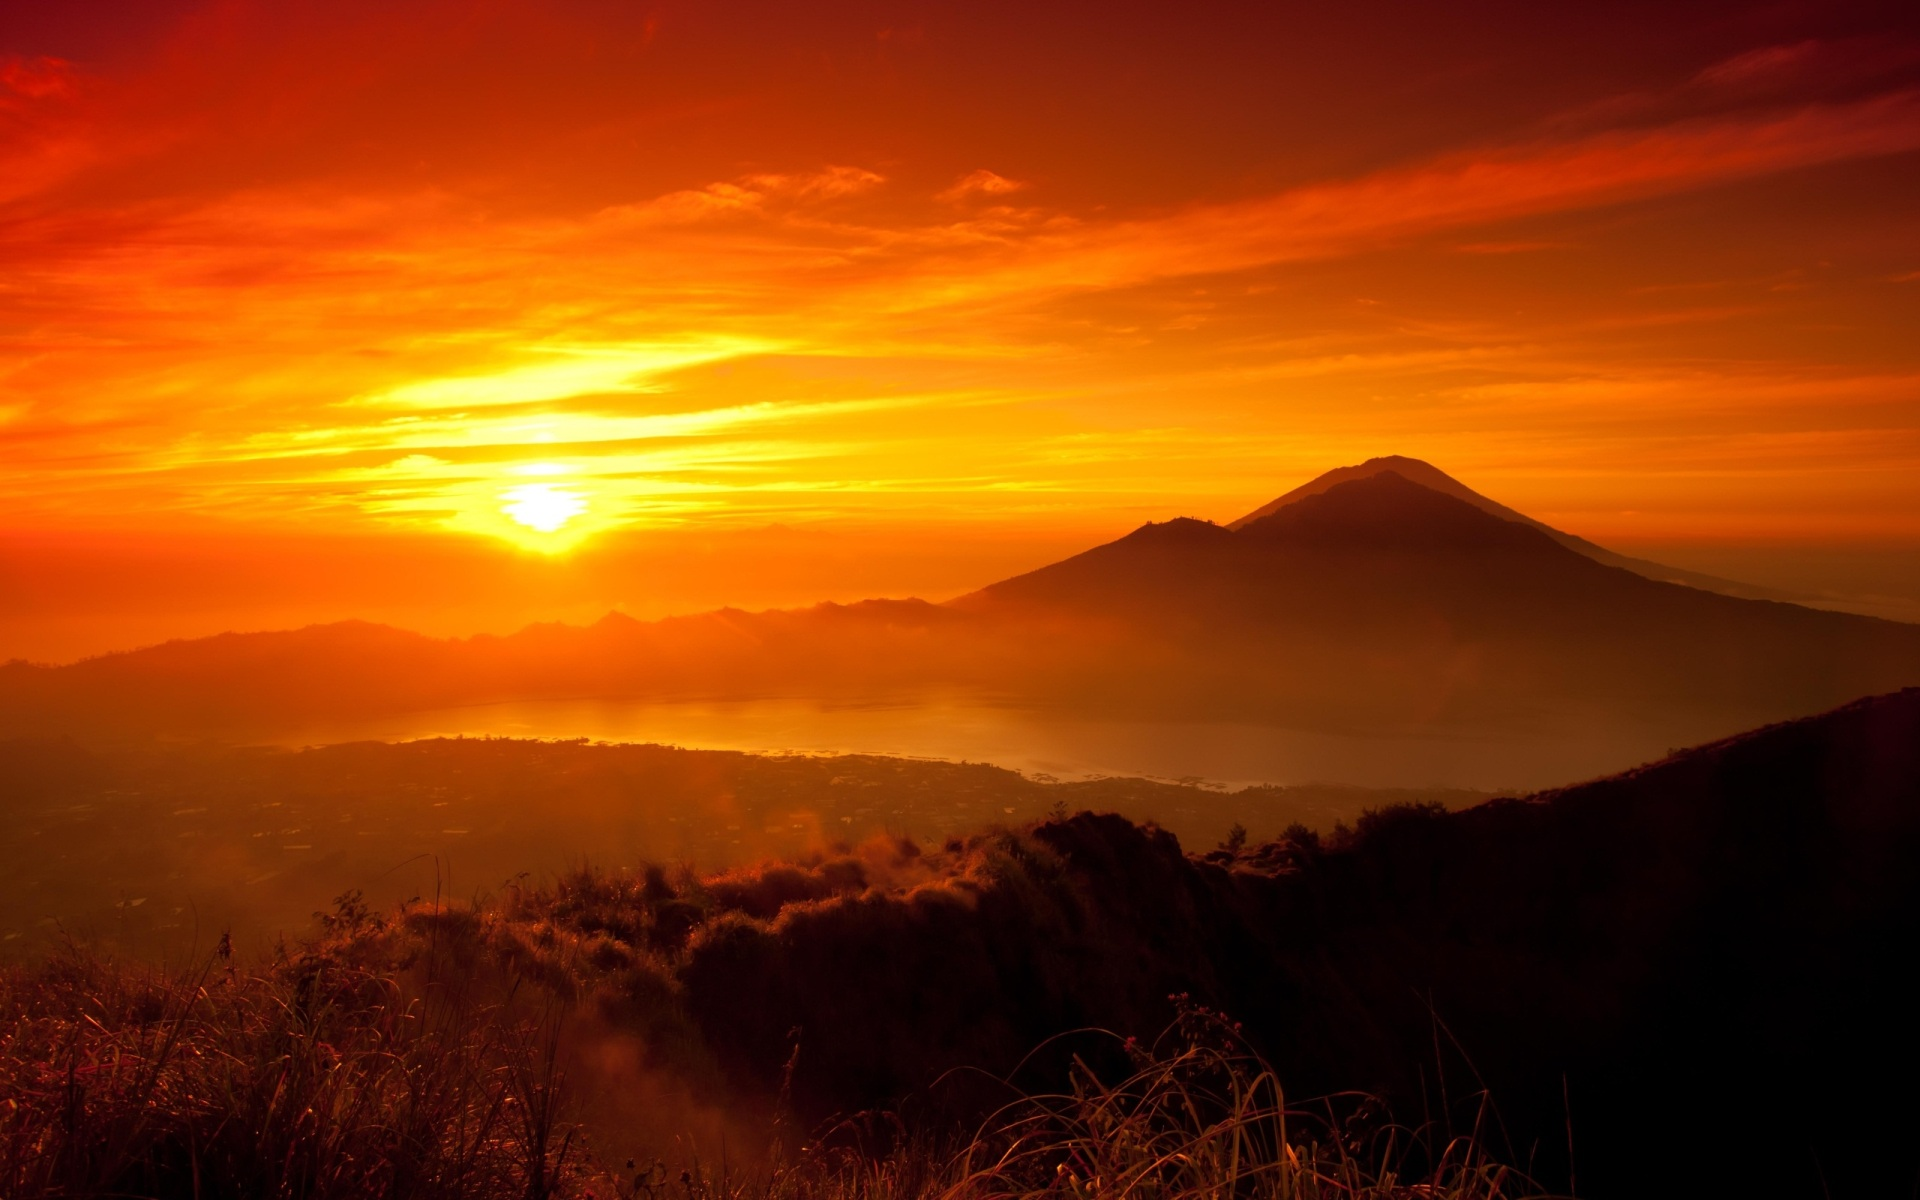 Sunrise Mountain 22 HD Wallpaper